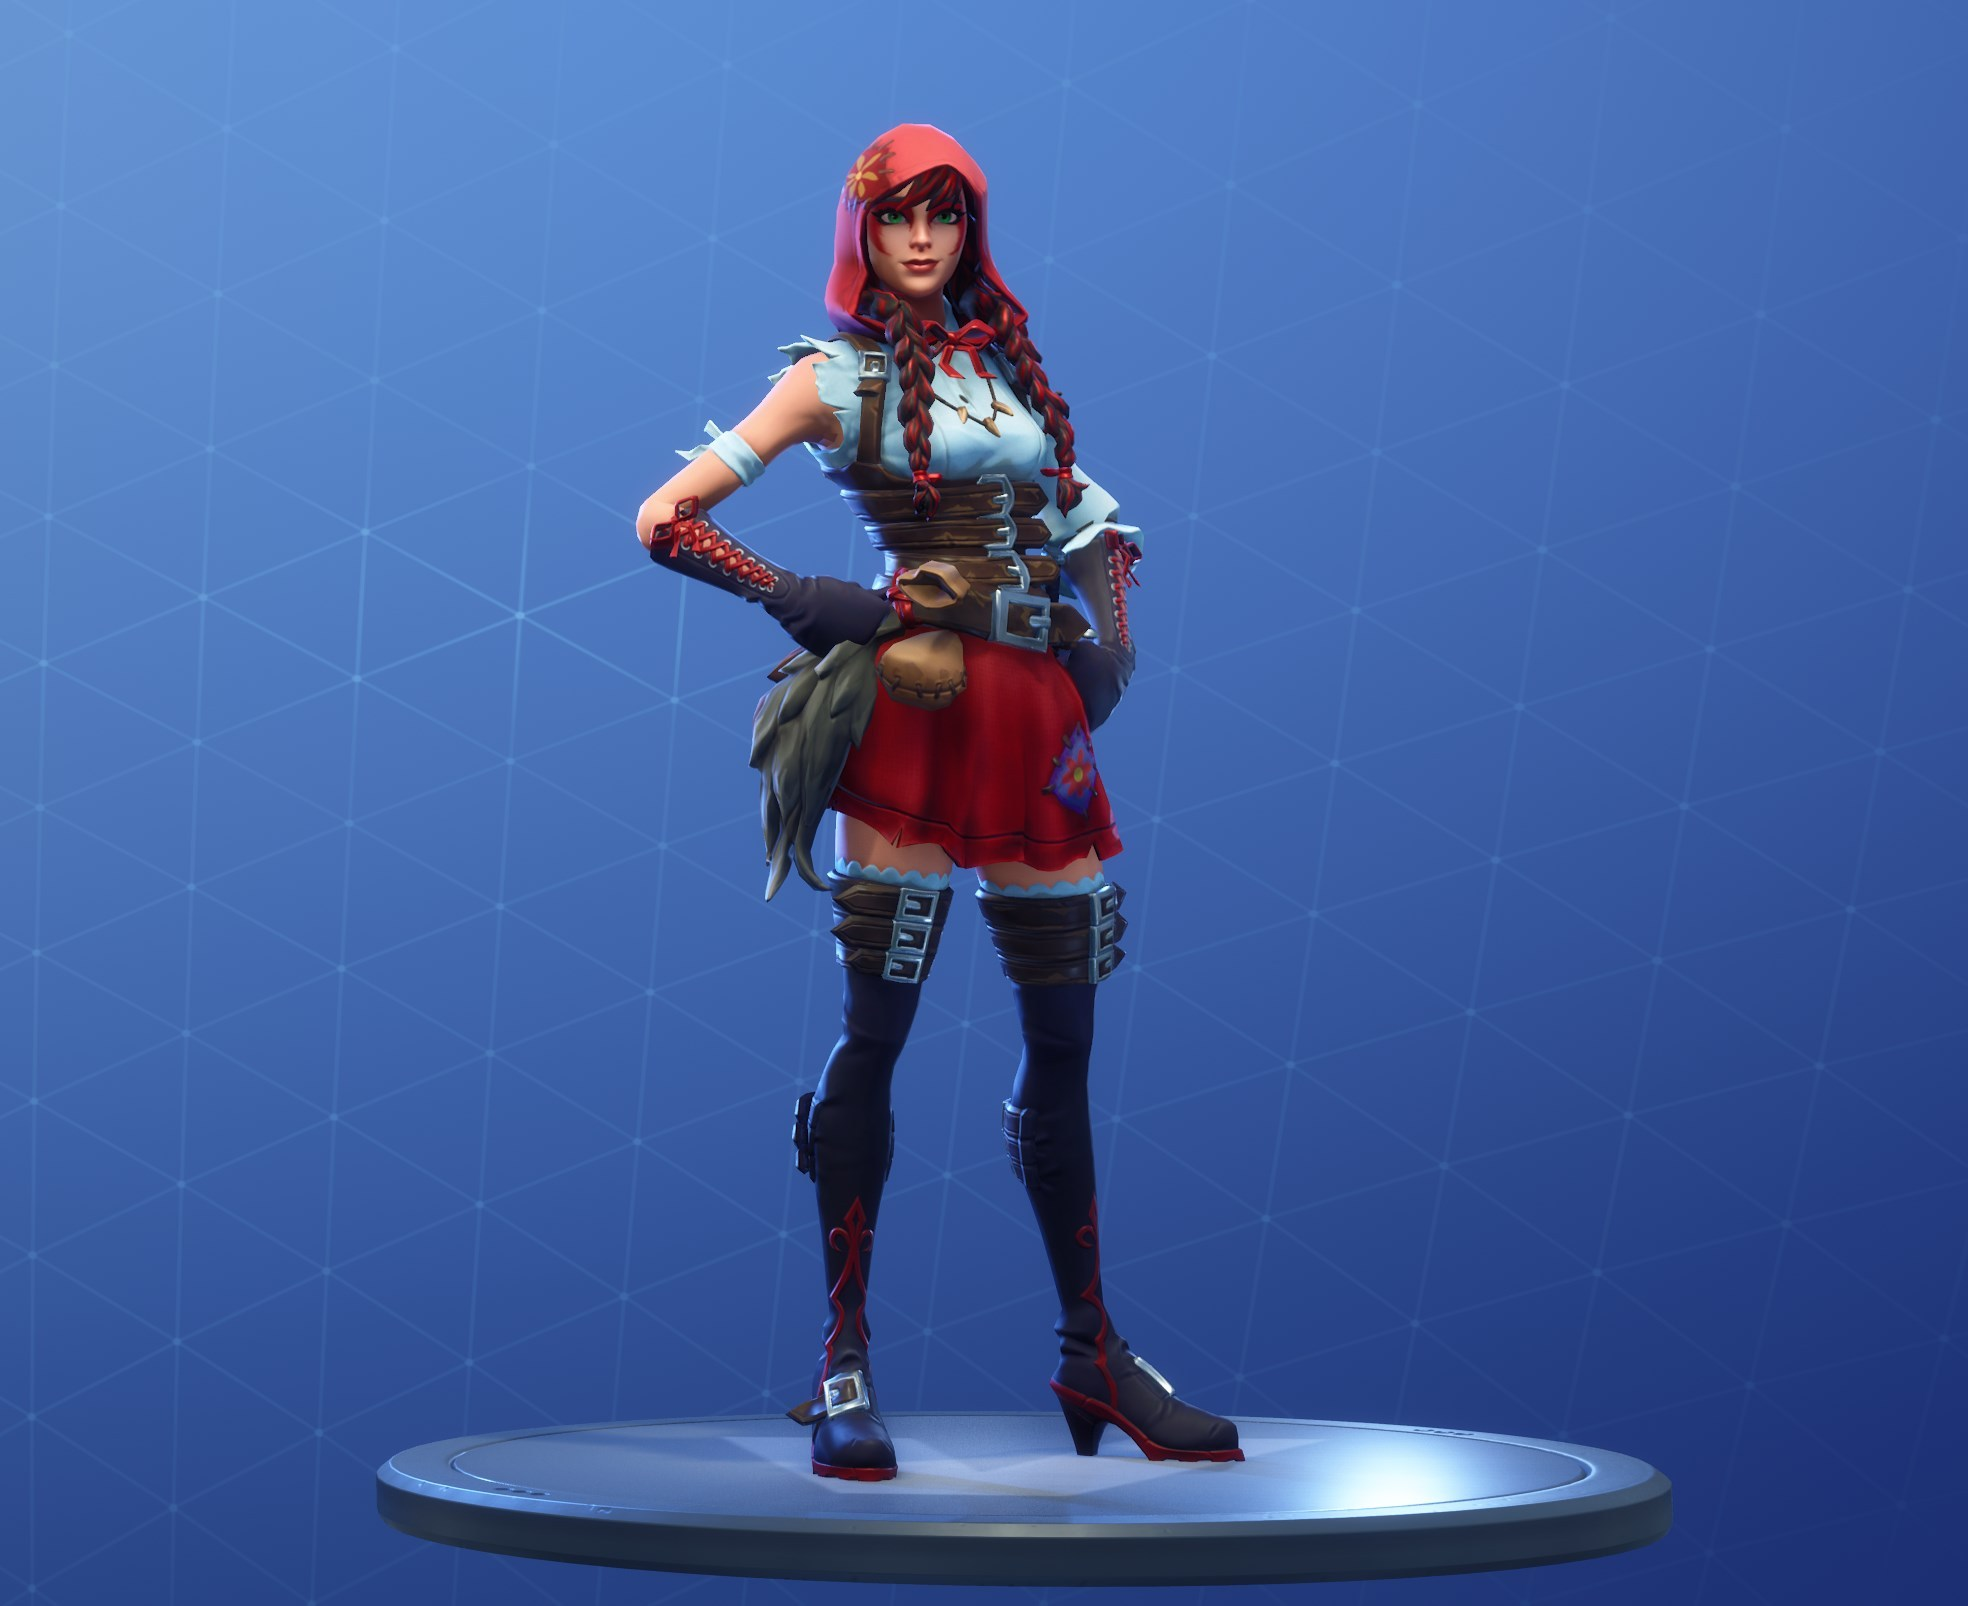 Fortnite Fable Skin Epic Outfit   Fortnite Skins 1968x1606